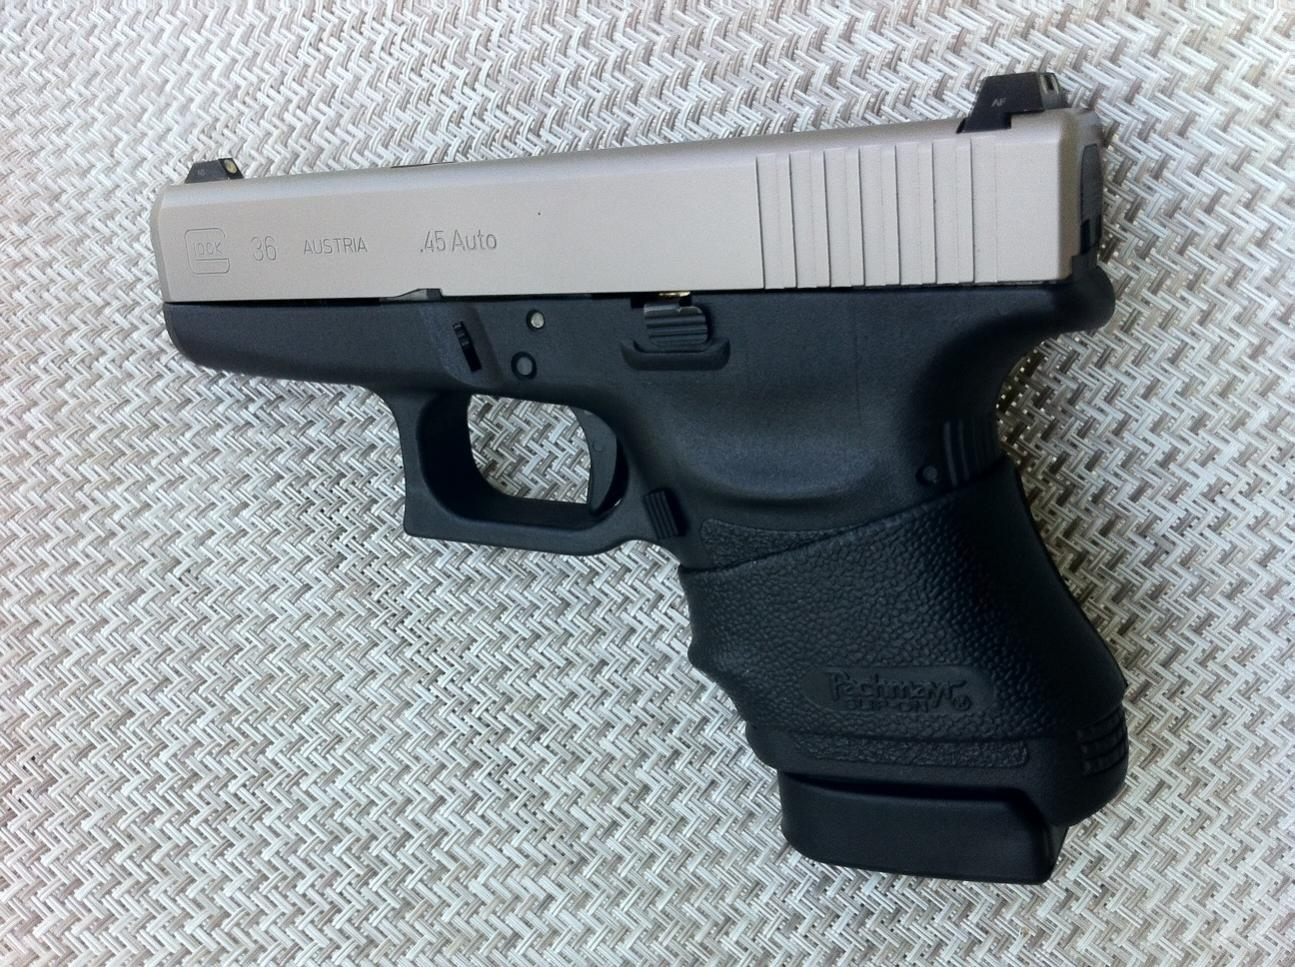 Holster for Glock 36-image.jpg